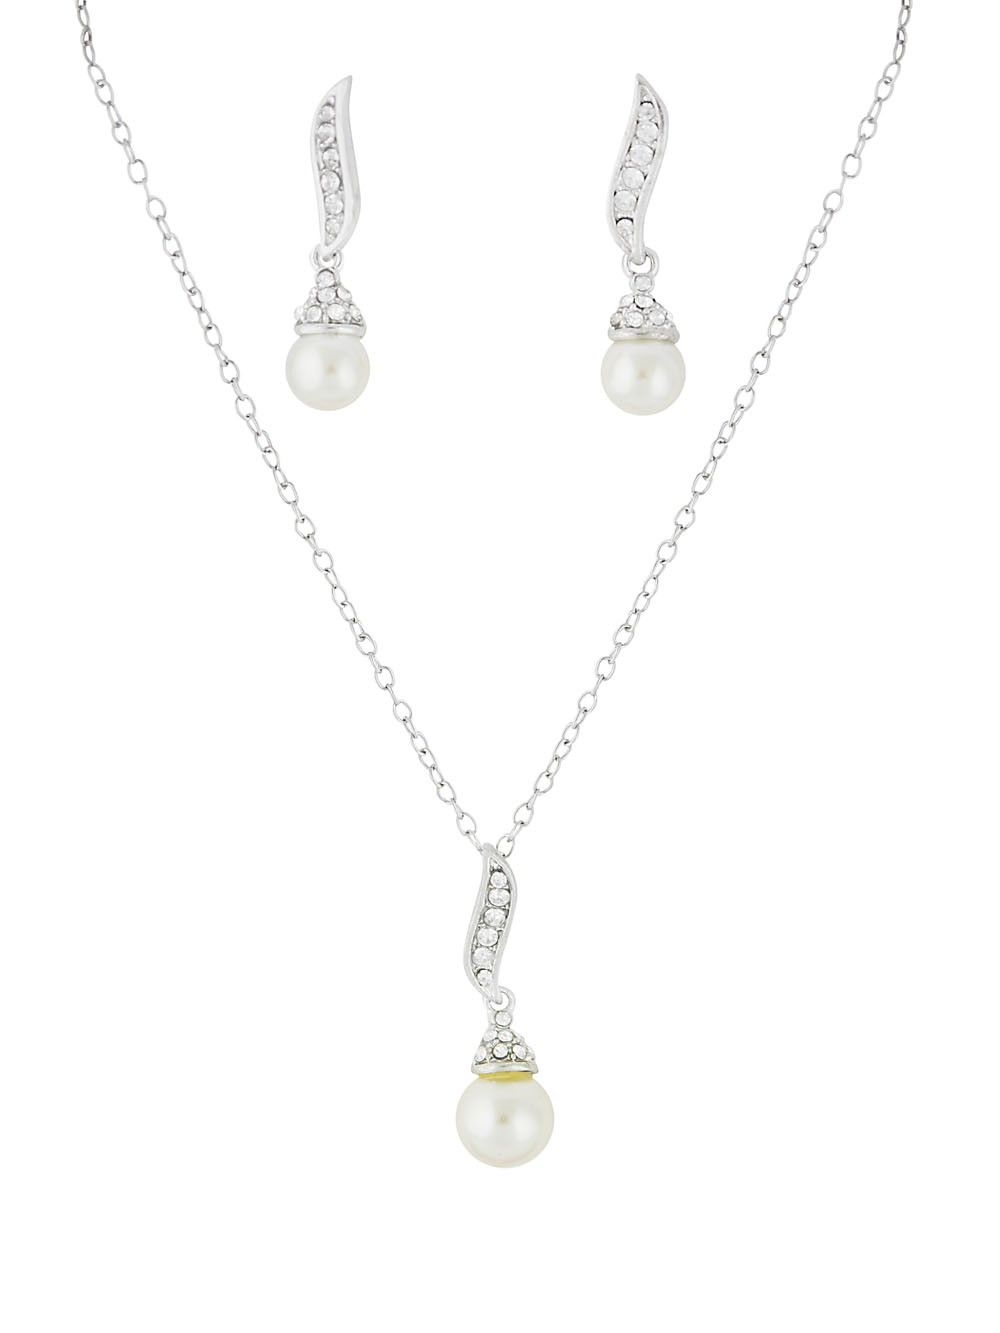 Pearl pendant short necklace pendants earrings and earring set